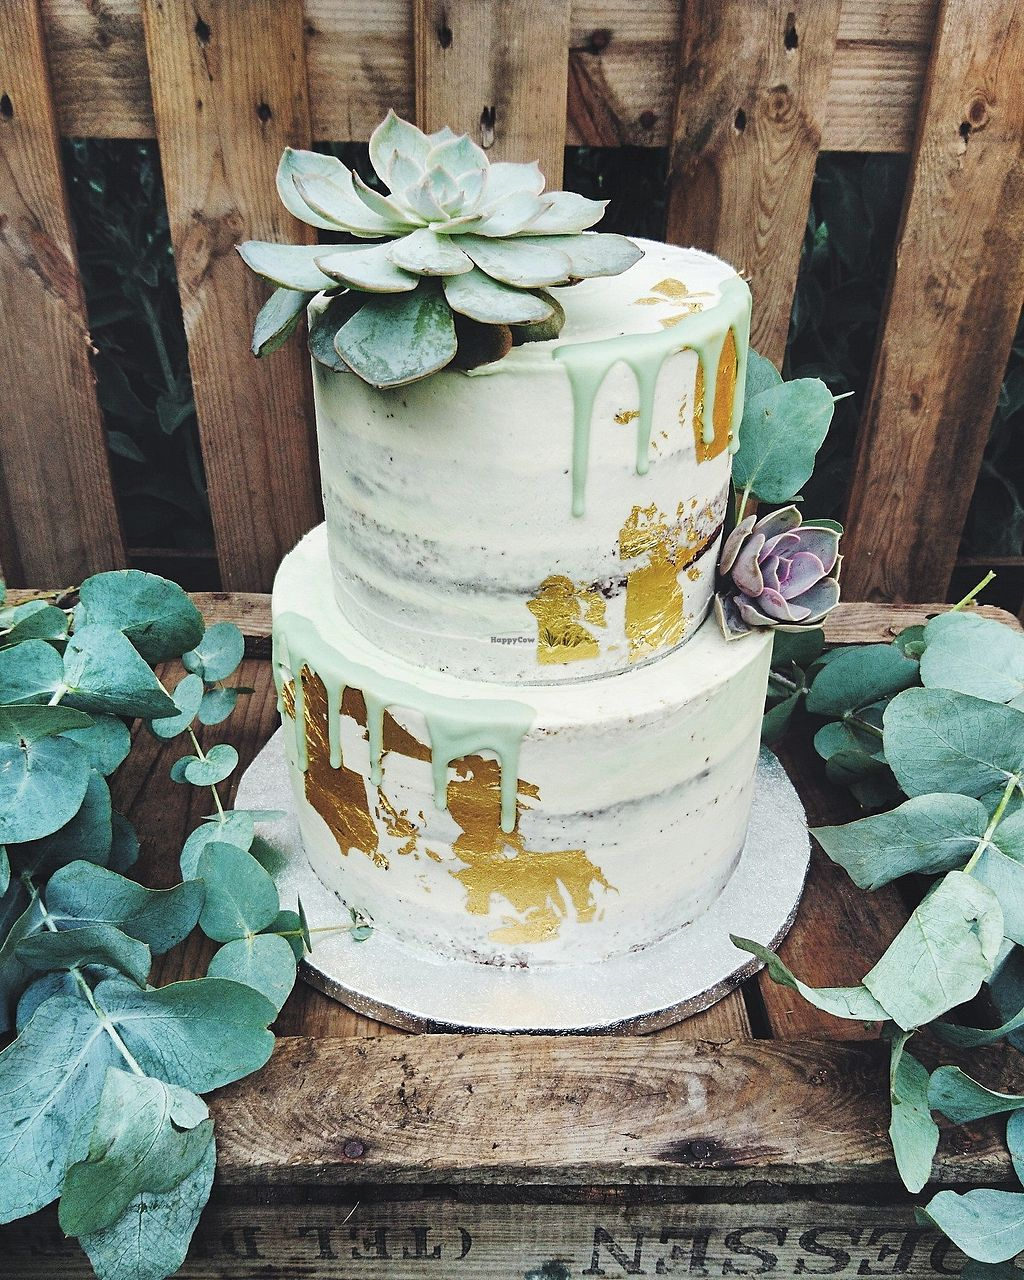 """Photo of Vic's Vegan Bakes  by <a href=""""/members/profile/VicBlandford"""">VicBlandford</a> <br/>2 tiered vegan cake <br/> July 31, 2017  - <a href='/contact/abuse/image/97391/287284'>Report</a>"""